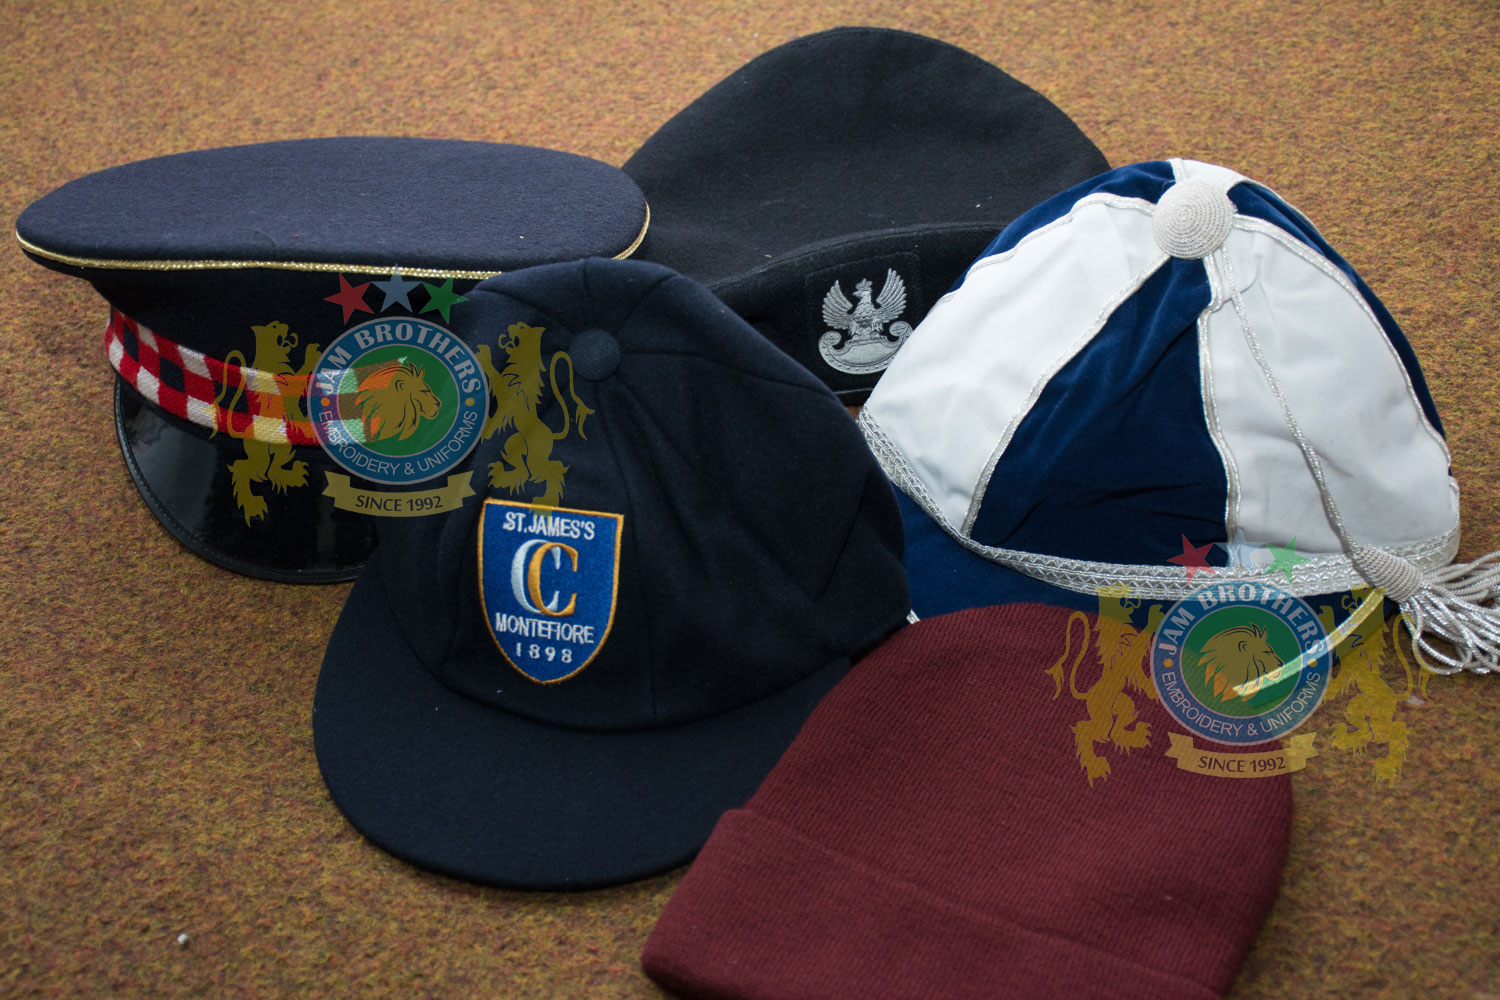 Caps Hats Officer Caps Berets Military Honor Cap Sports Cap Beanie Officer hat officer cap Lanyard Sword Knot Aiguillettes Braid Rope Ribbon Accessories Military Uniform Accouterments Lace Trimming Braid Gold White Silver Blue Weave Weaving Uniforms Accouterments Tailor Belts Leather Ceremonial Combat Cadet Parade Belts #Hand Embroidery #BullionEmbroidery #TradeBadges #MessDress #Badges #Ranks #Regiment #Parade #Ceremonial #Cord #Textile #ArmedForces #BritishArmy #Army #Aiguillette #Military #MilitaryUniforms #Militaria #Insignia #Headwear #Caps #OfficerCaps #UniformCaps #PeakCaps #DressCaps #MilitaryCaps #RailCap #Berets #Glengarry #RoyalNavy #RoyalMarine #RoyalAirForce #RAF #Infantry #Armor #EME #Battalion #Medals #Ribbons #Braid #Lace #Uniforms #UniformSupplie #Police #Security #Buckles #Guards #Accoutrement #Badge #Patch #Machine #MachineEmbroidery #HandEmbroidery #Bullion #BullionBadges #BullionEmbroidery #WovenBadges #Woven # Emblems #Regiment #Regimental #OfficerCaps #PeakCaps #Soldier #Helmets #Covers #HelmetCovers #Armlets #Sliders #Epaulettes #Webbing #Chevron #Officer #ShoulderBoards #Gorgets #Tassel #Sash #Hand #HandSewn #Aviation #AviationClothing #Crest #FamilyCrest #CoatofArms #EmbroideredPillows #Cords #Aiguillettes #CapCords #ChinCord #DressCord #SwordKnot #Tassels #WhistleCord #Lanyard #Knots #Banners #ClanBadges #Peaks #Visor #Wings #CapBadges #Pennants #HonorCaps #OfficerCaps #SportsCap #Masonic #Aprons #MasonicAprons #Collars #MasonicCollars #Gloves #MasonicGloves #MasonicPatches #Patches #Regalia #MasonicRegalia #Freemason #Braid #Chevron #Cuffs #Fringes #Sashes #HeadGear #FieldGear #England #USA #Poland #ArmedForces #Schools #Colleges #University #Sialkot #Pakistan Sialkot Pakistan PeakCaps OfficerCaps ShoulderRanks BullionBadges UniformAccessories MilitaryUniforms DressCap TradeBadge RankMarking WireBadges Army Airforce Navy Police